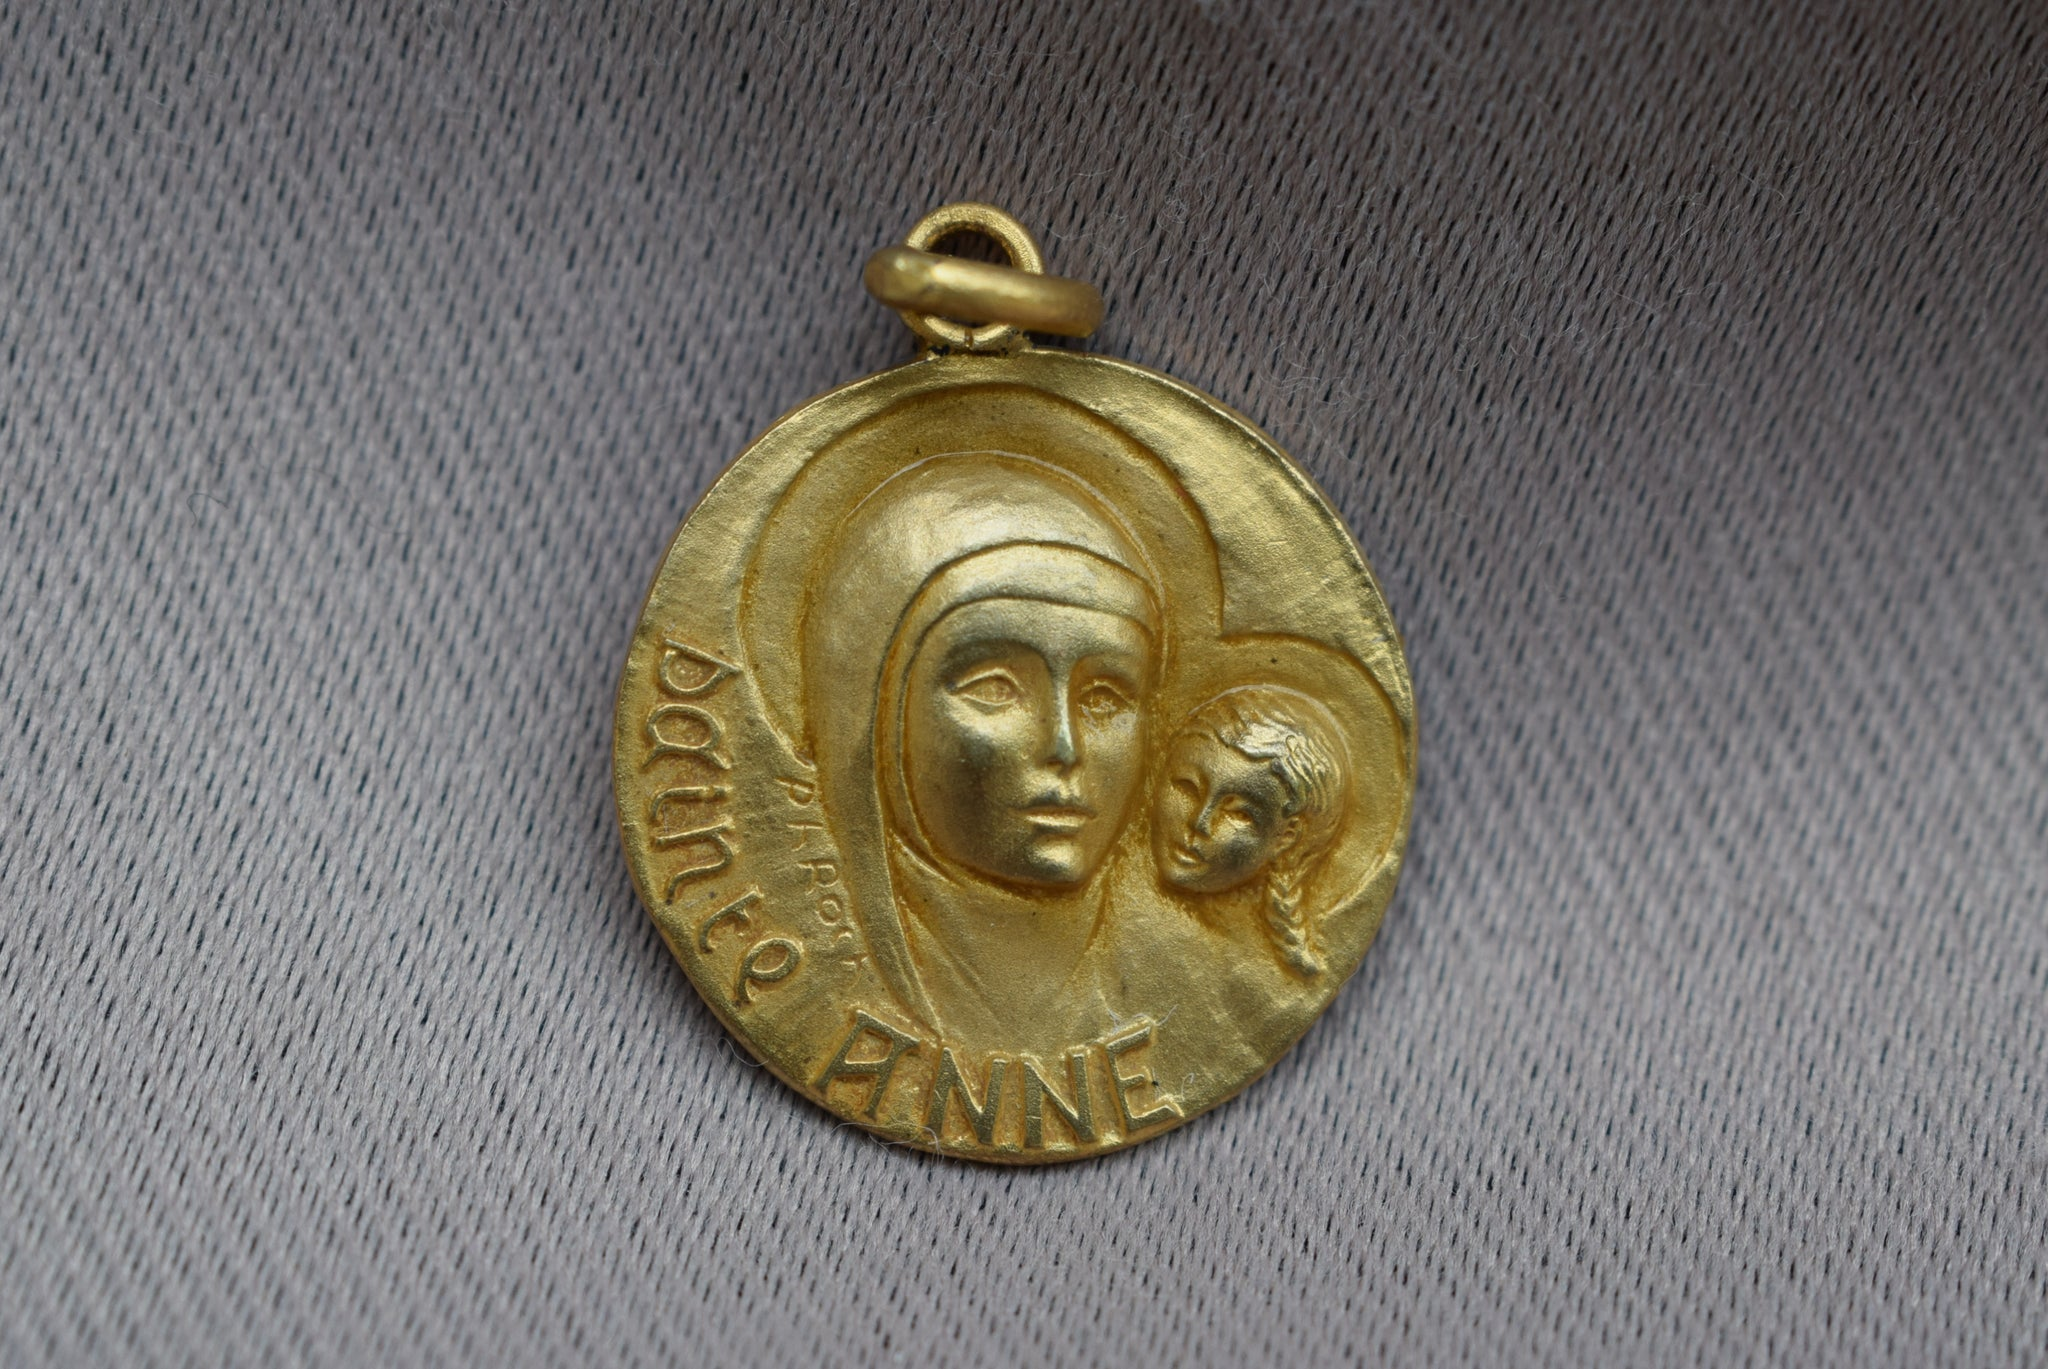 5605b9d0528 Saint Ann Medal - French Religious Vintage Gold Medal Pendant Charm by Jean  Philippe Roch -